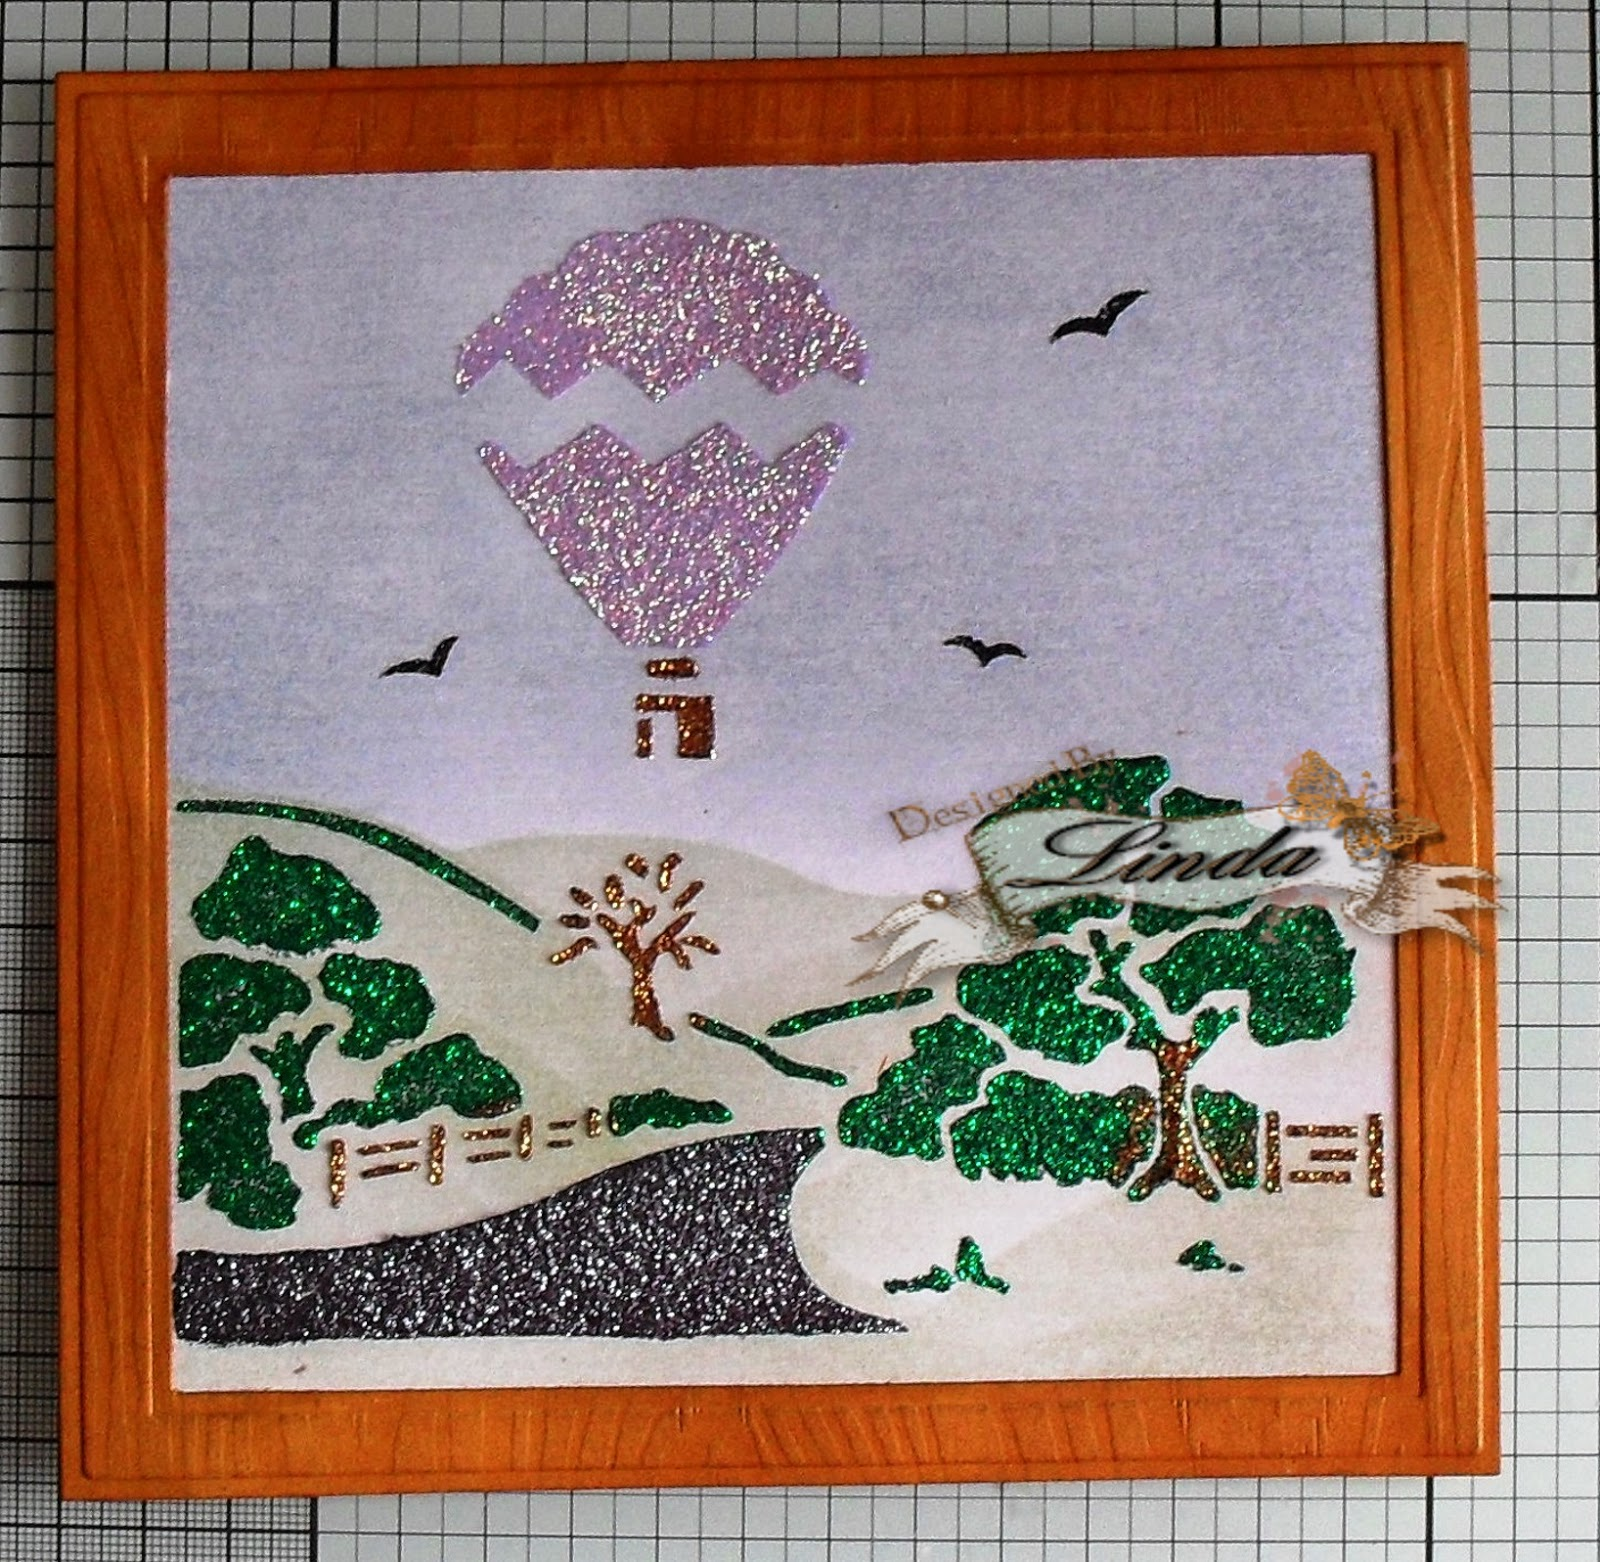 Cheap Frames From The Craft Store And Imagination: Imagination Crafts: Up, Up And Away